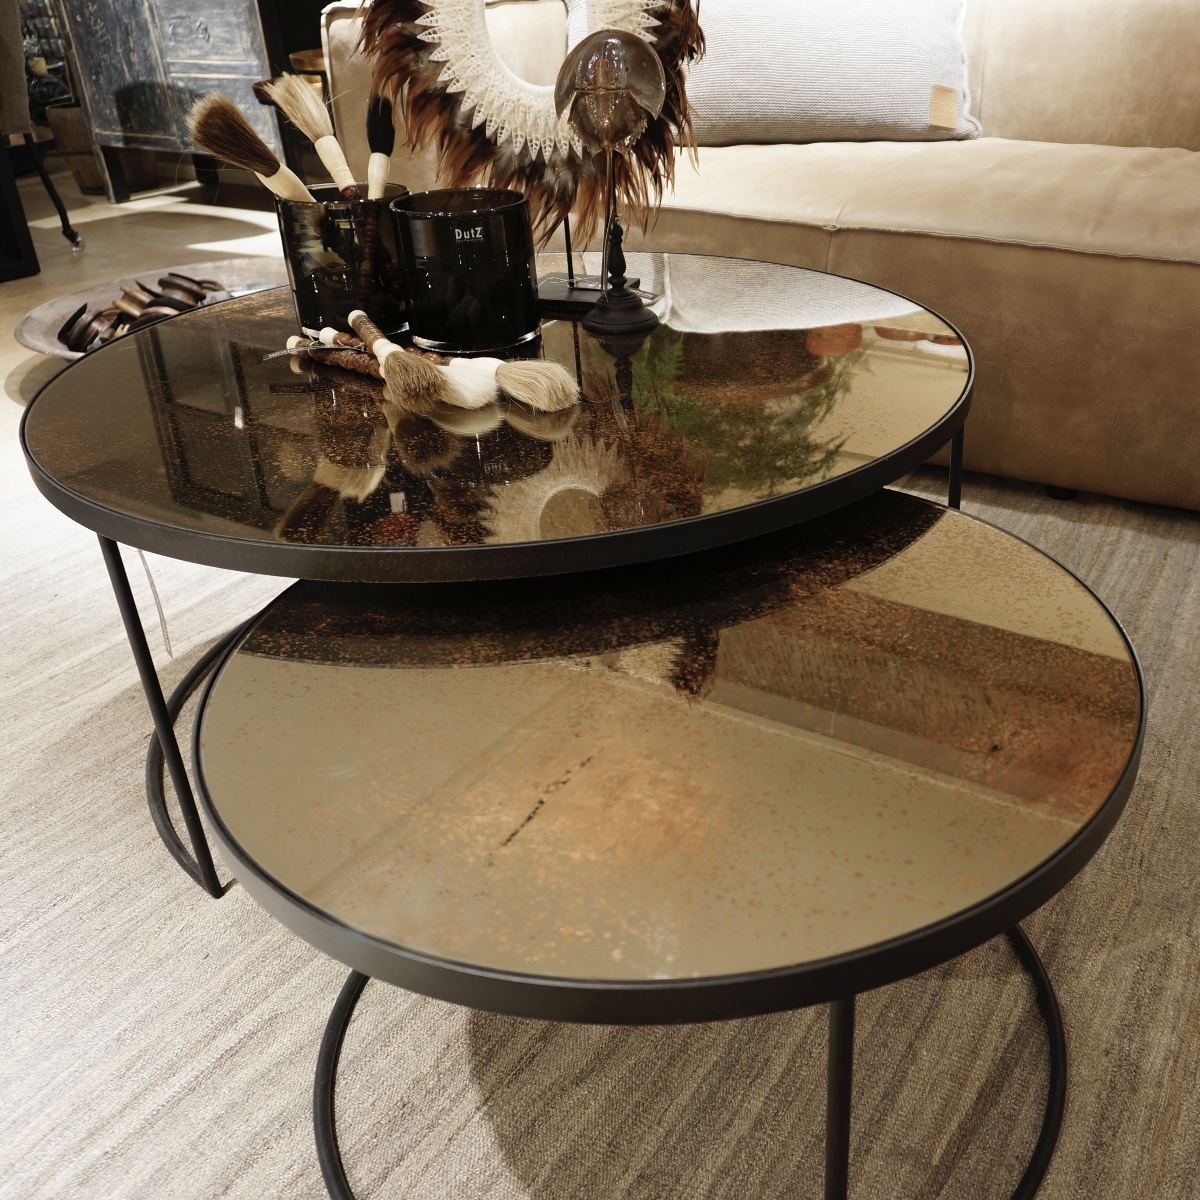 Set Ronde Salontafels.Round Coffee Tables Set With Aged Bronze Mirrors